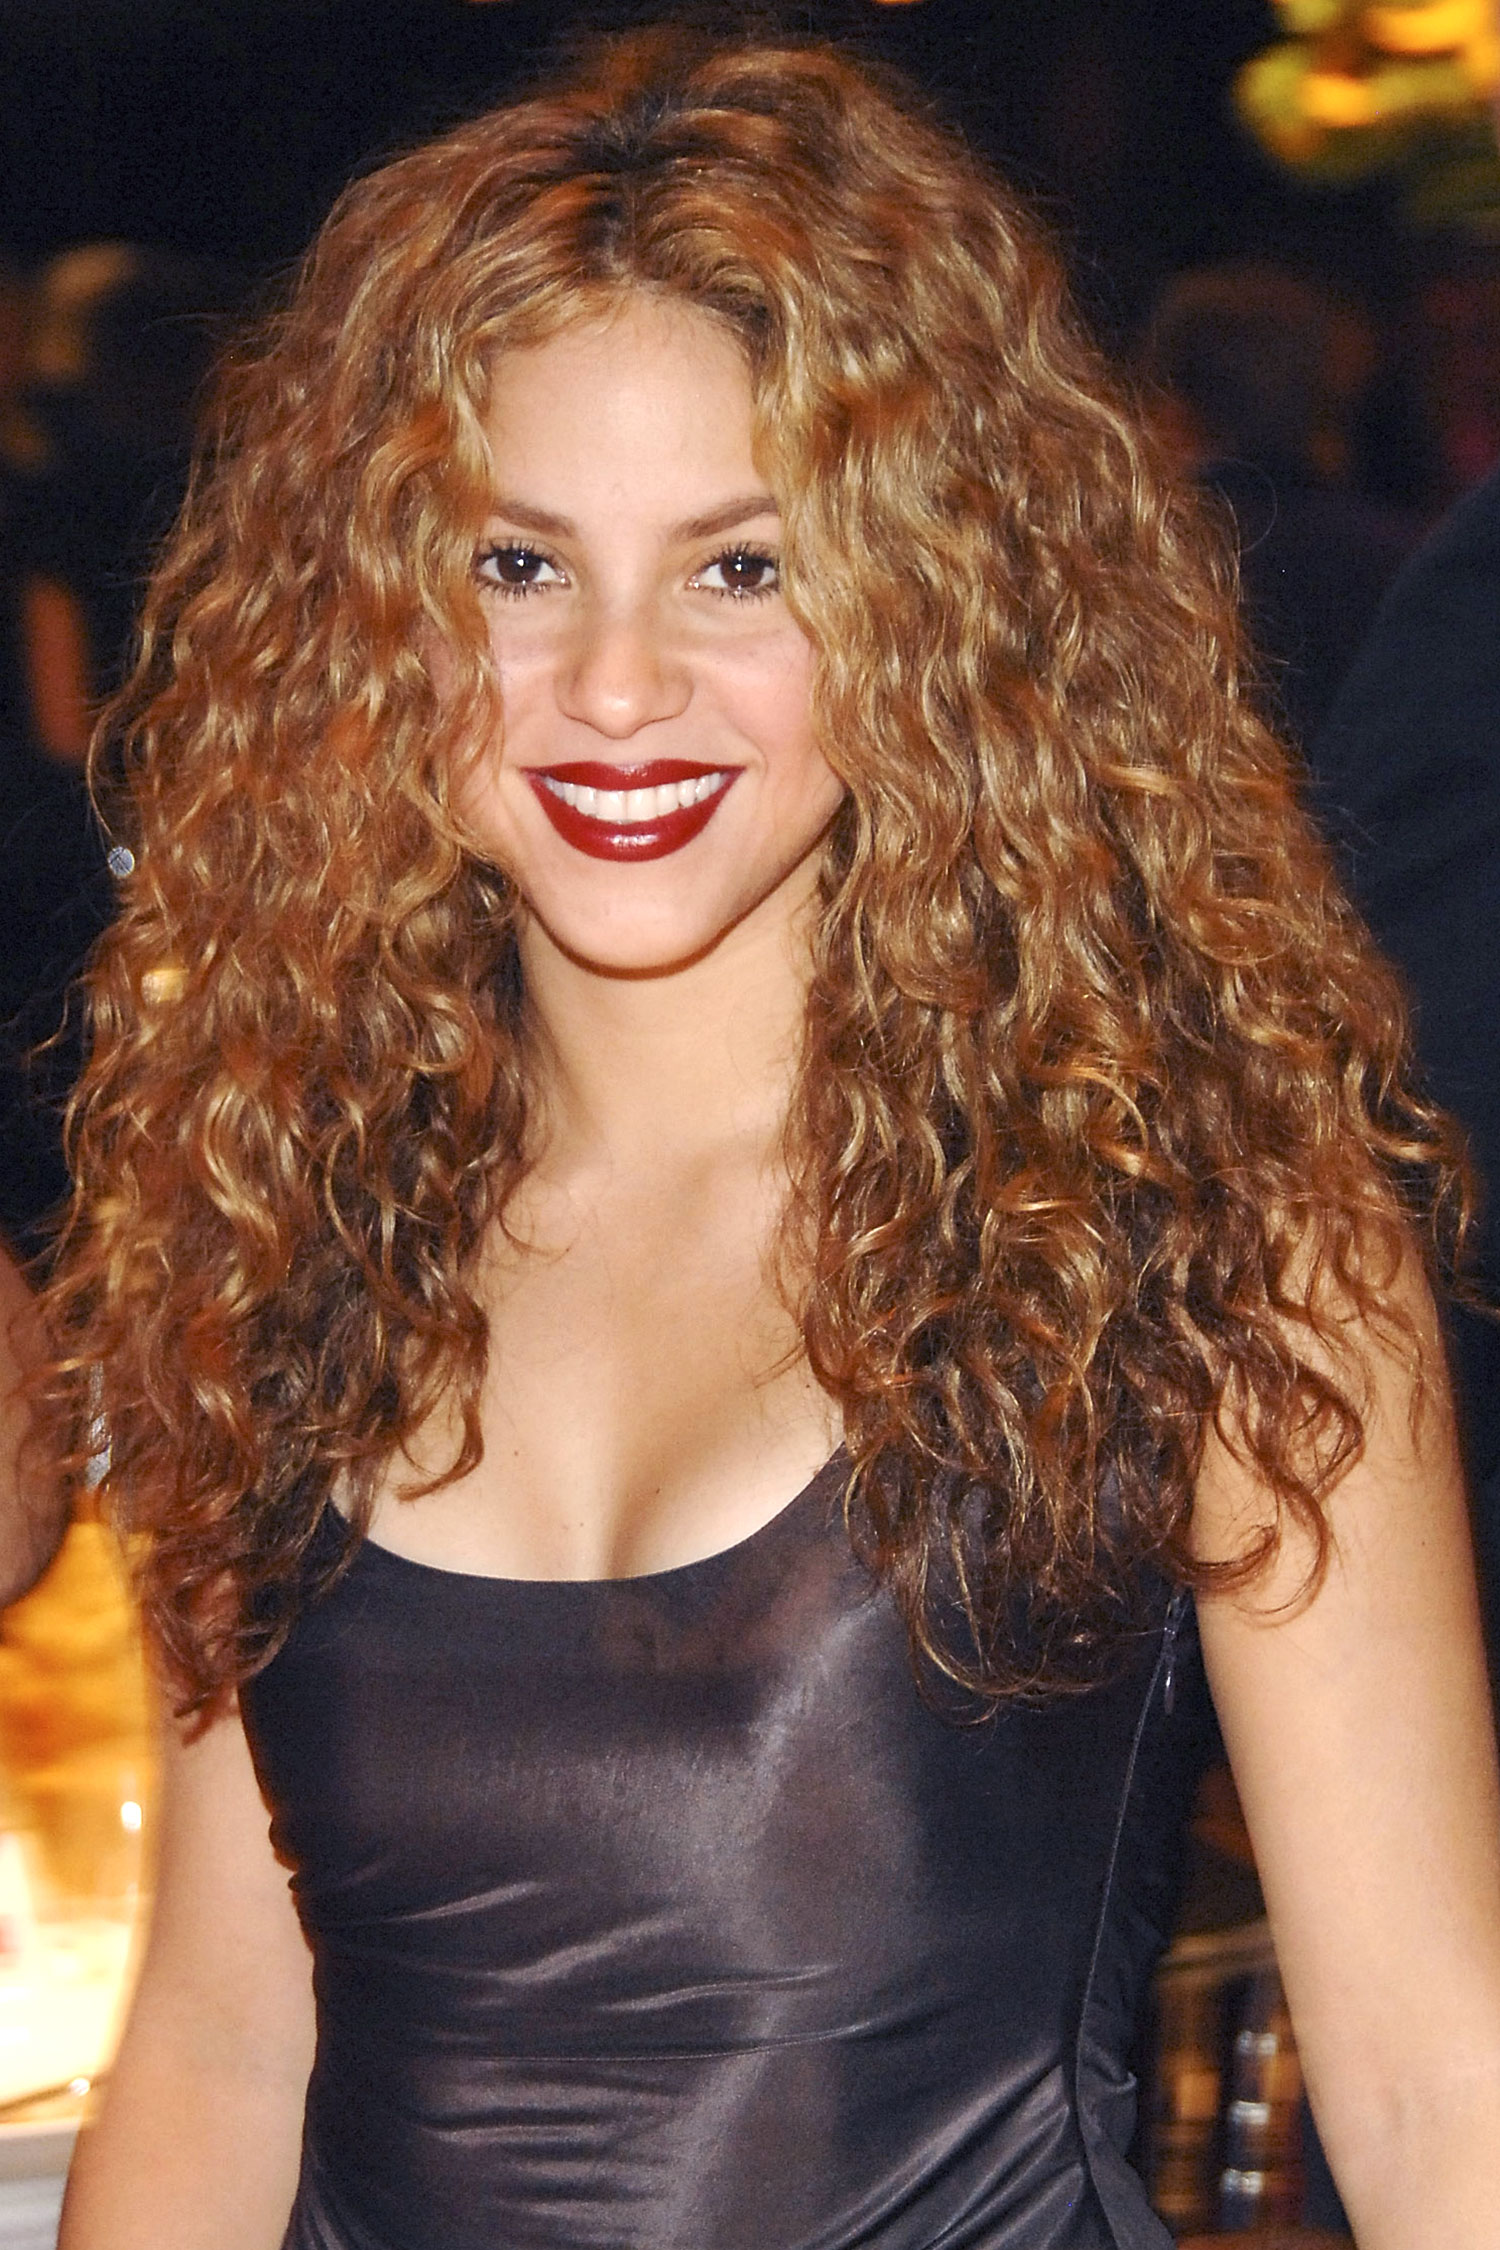 Terrific 20 Curly Hairstyles And Haircuts We Love Best Hairstyle Ideas Short Hairstyles Gunalazisus